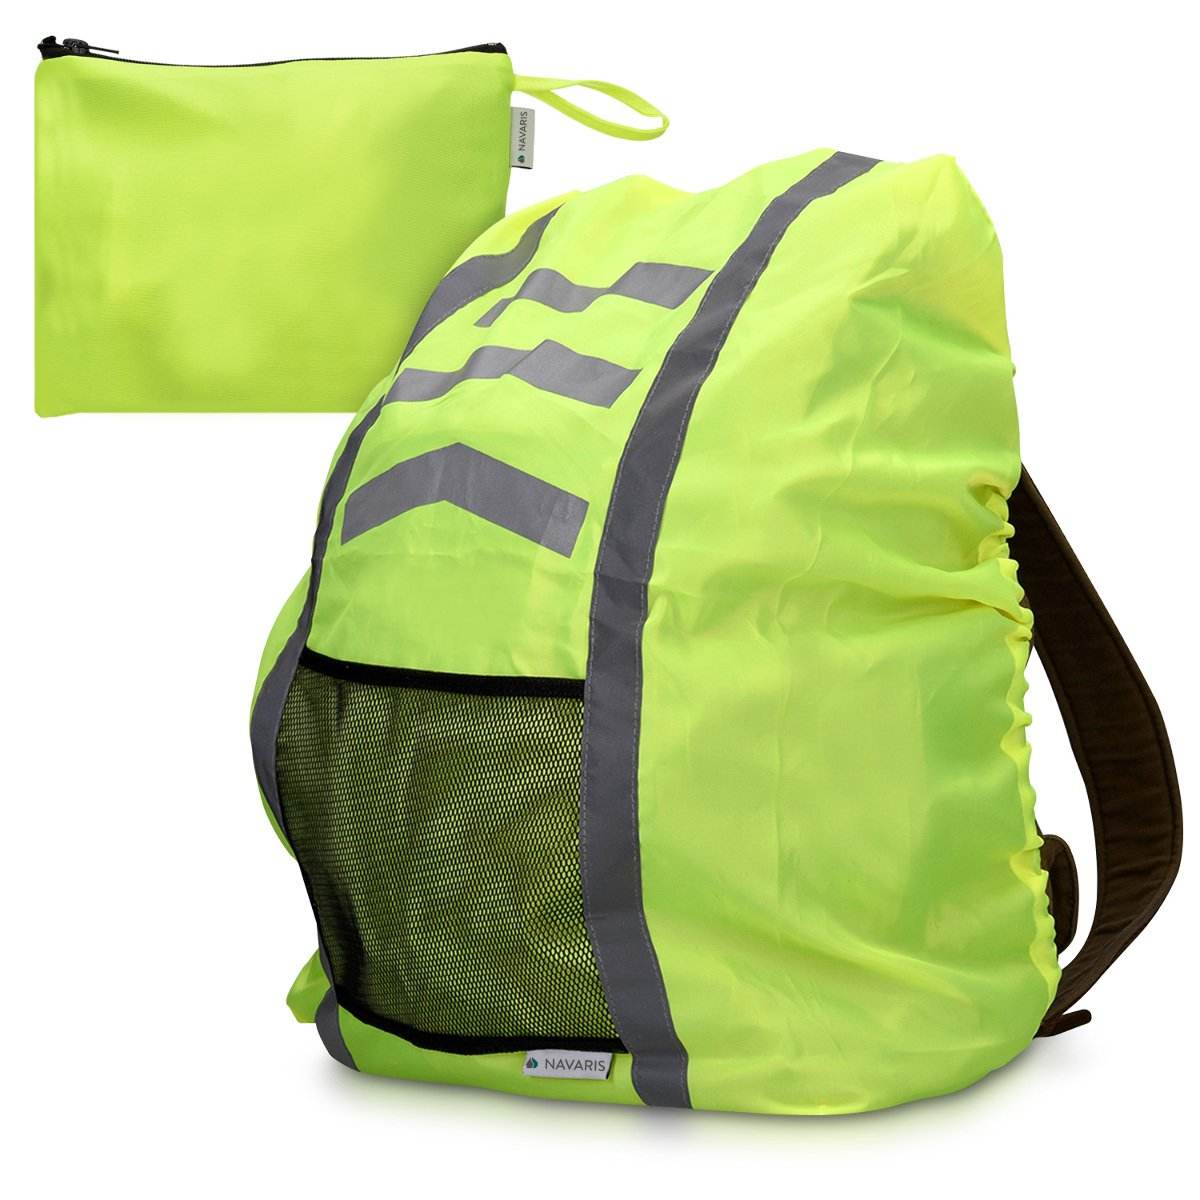 Navaris Raincover Backpack Satchel Raincover - 65x75 cm Cover for Satchel Reflective Waterproof - Raincover in neon Yellow KW-Commerce 43677.75_m000579